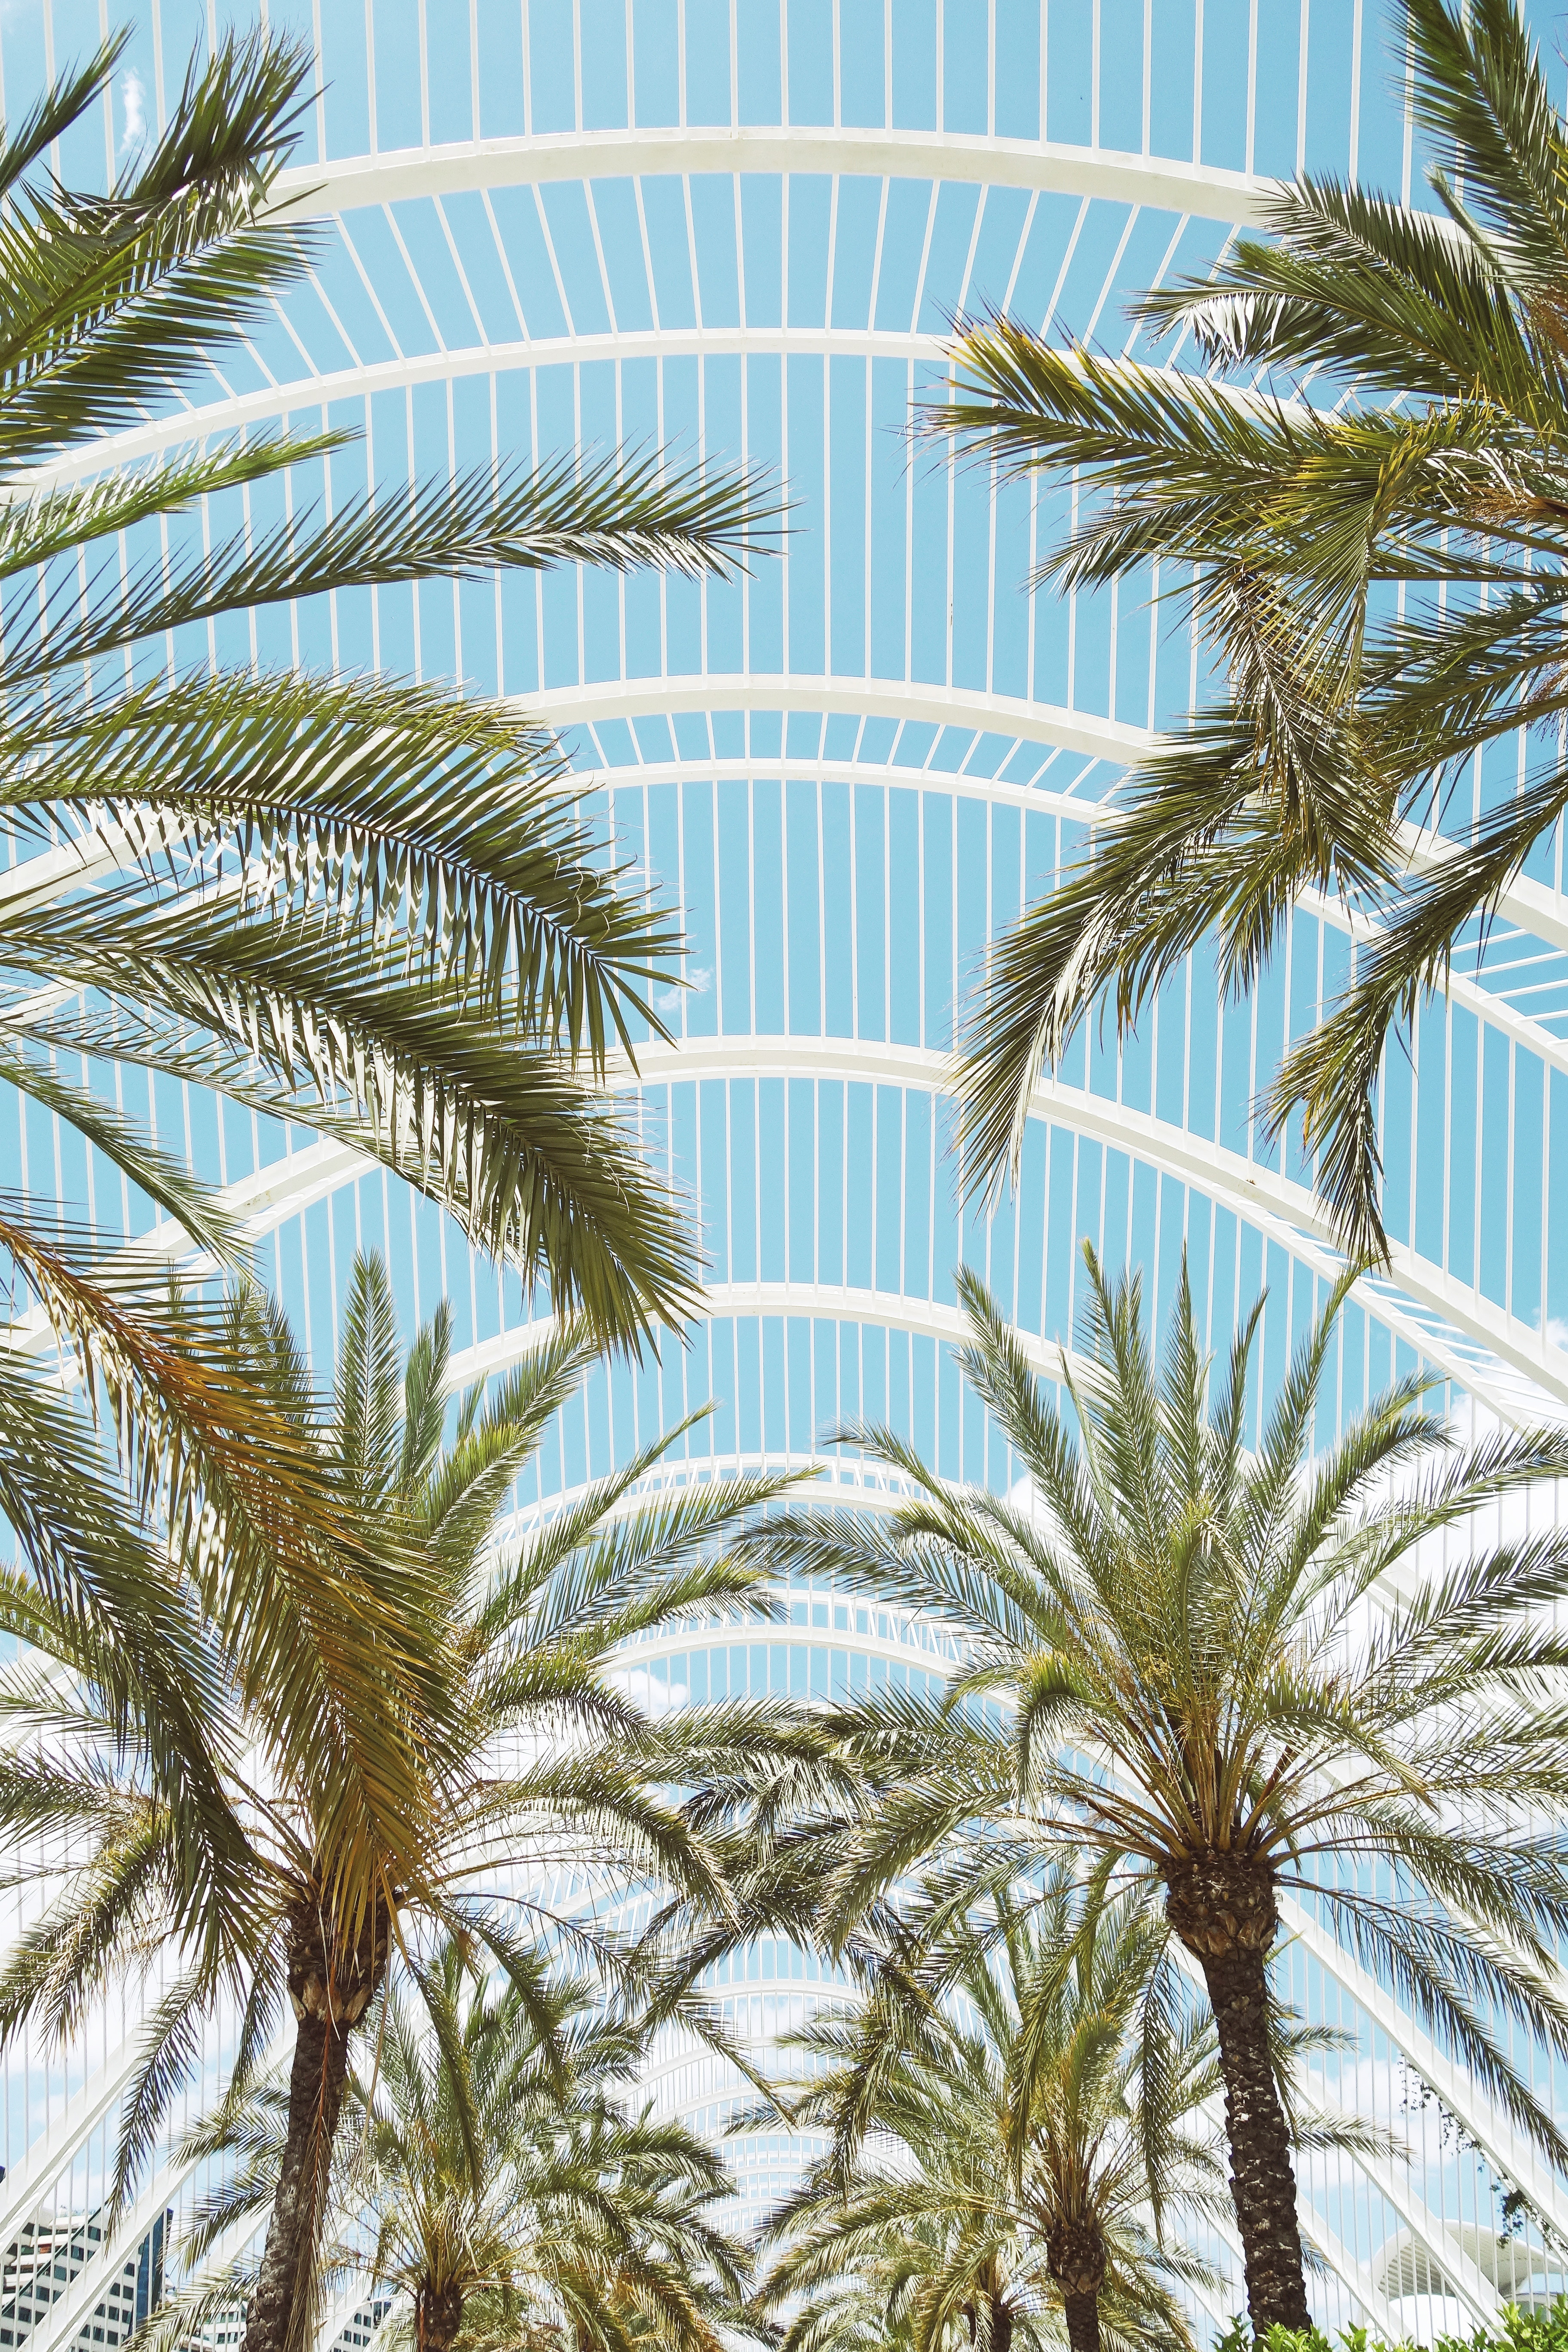 125756 download wallpaper Nature, Branches, Roof, Architecture, Palms screensavers and pictures for free